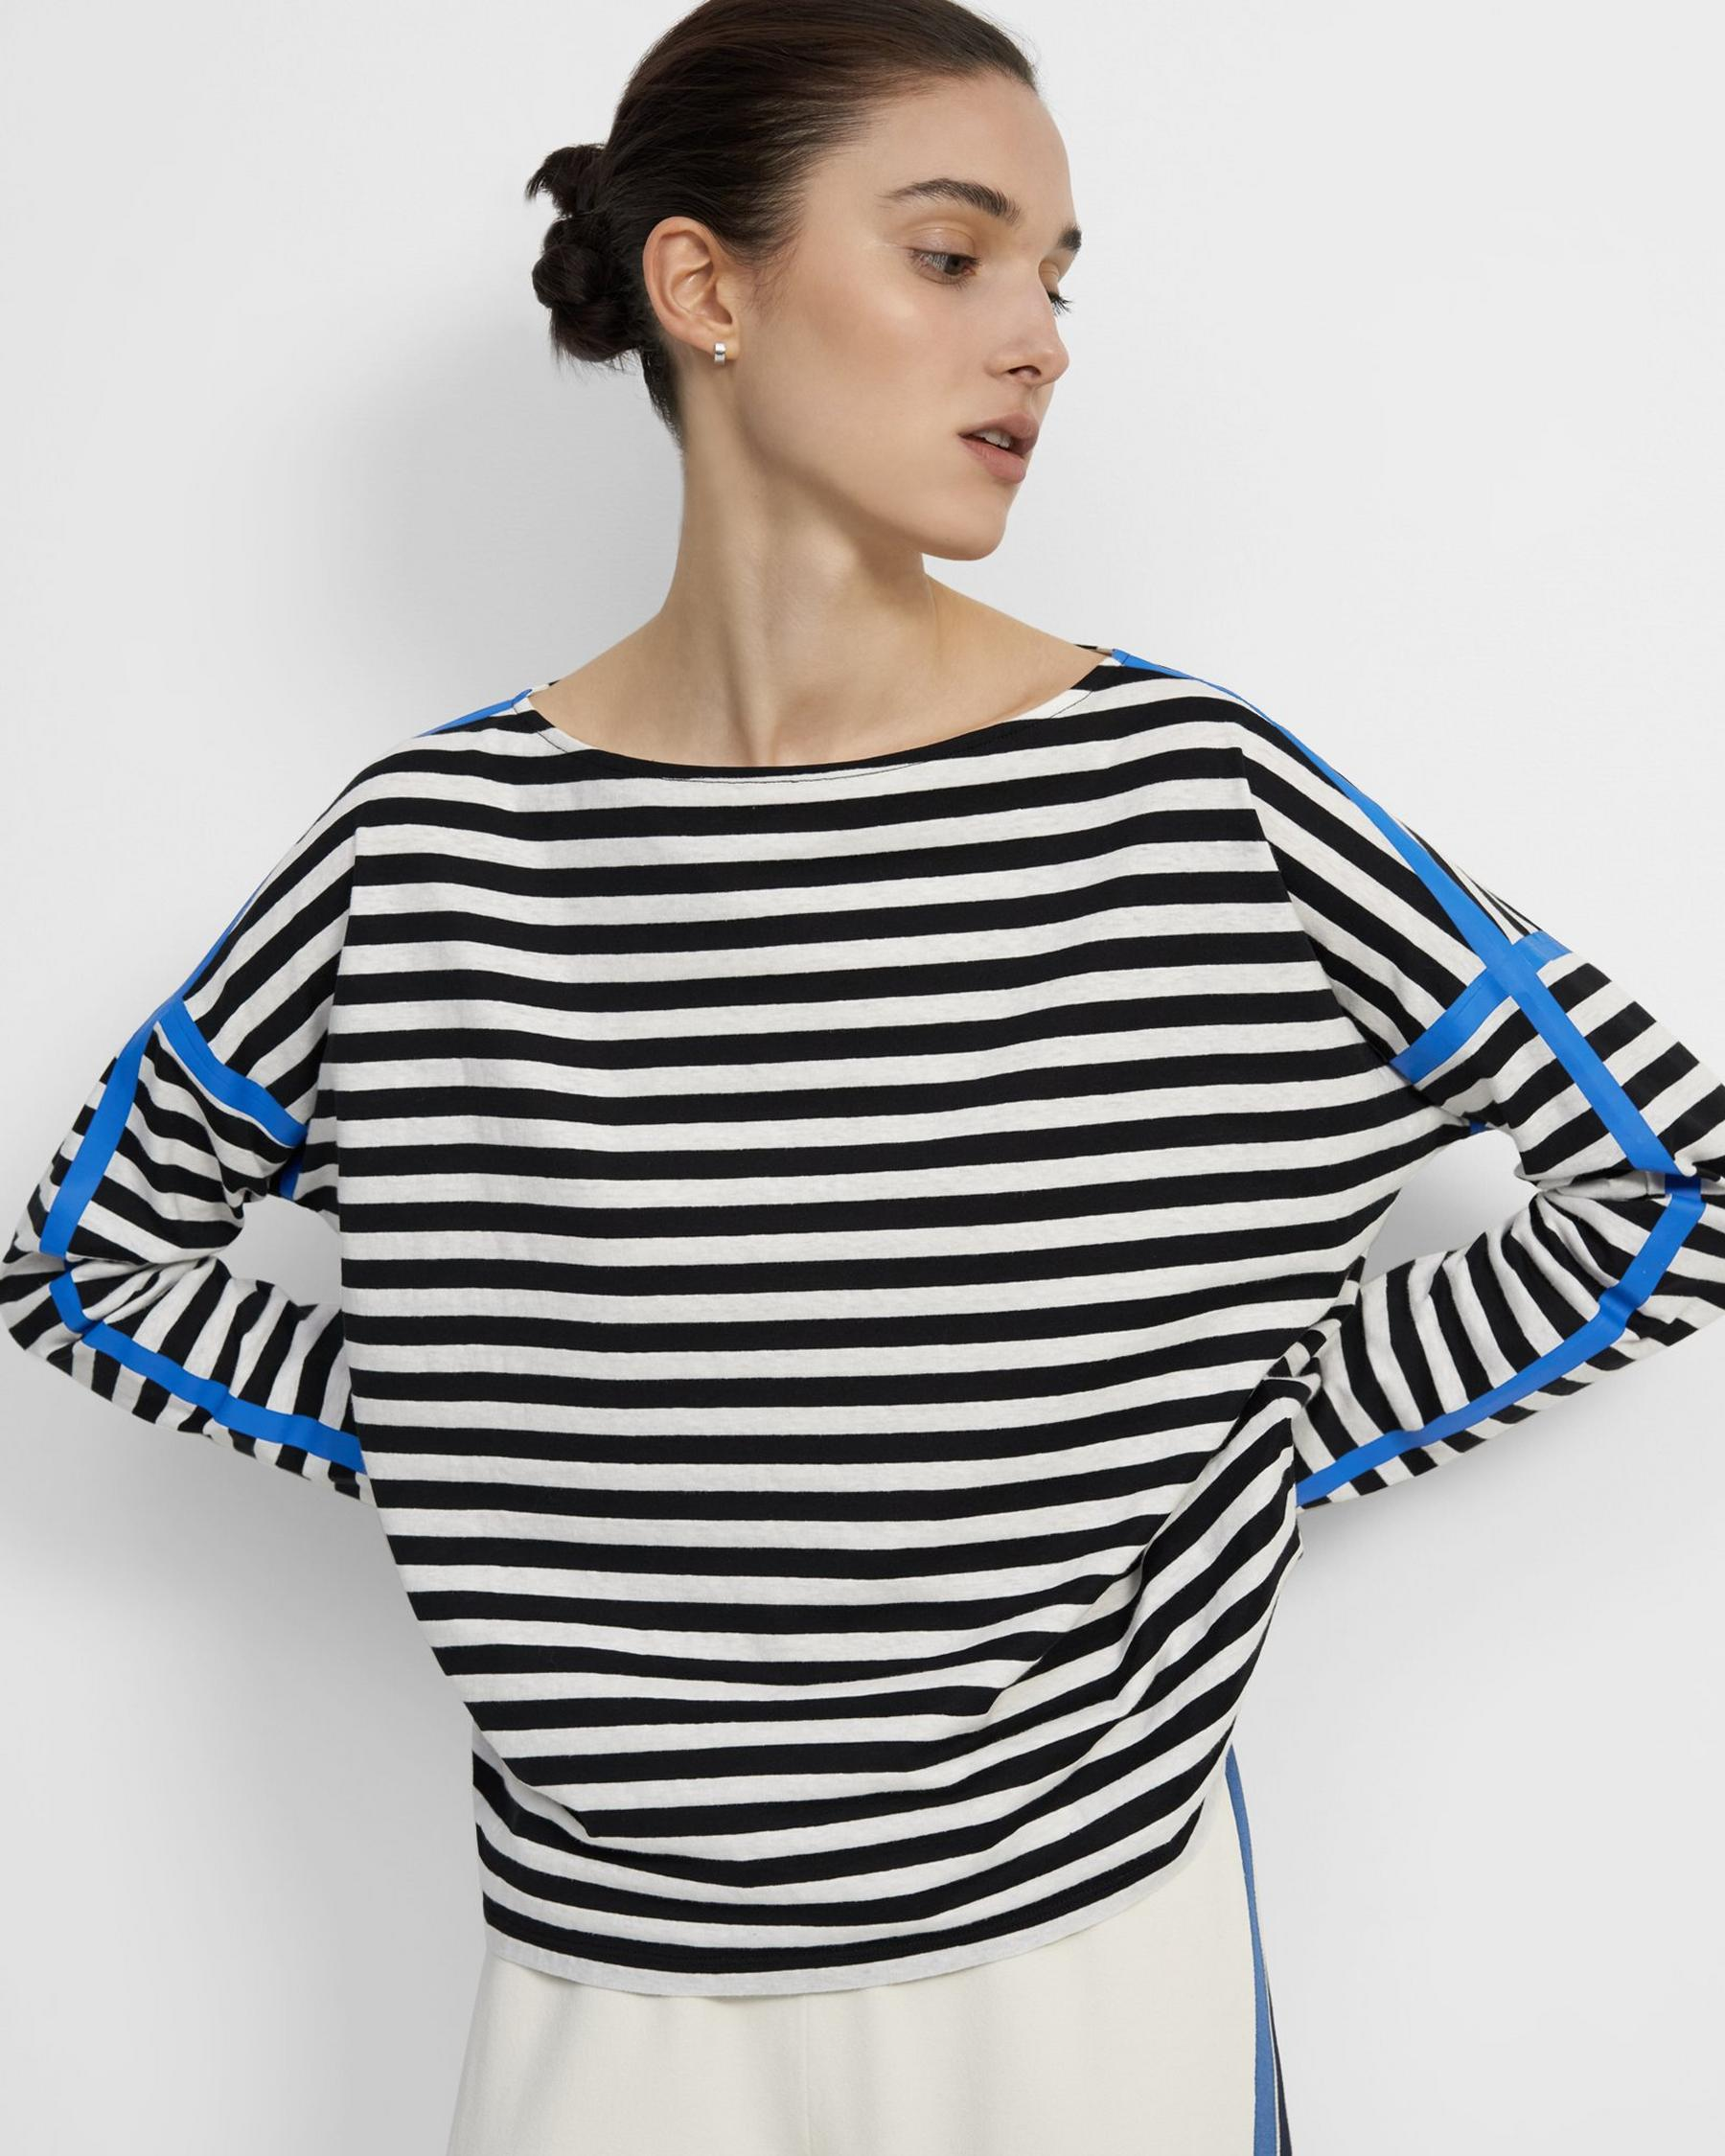 Long-Sleeve Straight Tee in Striped Cotton